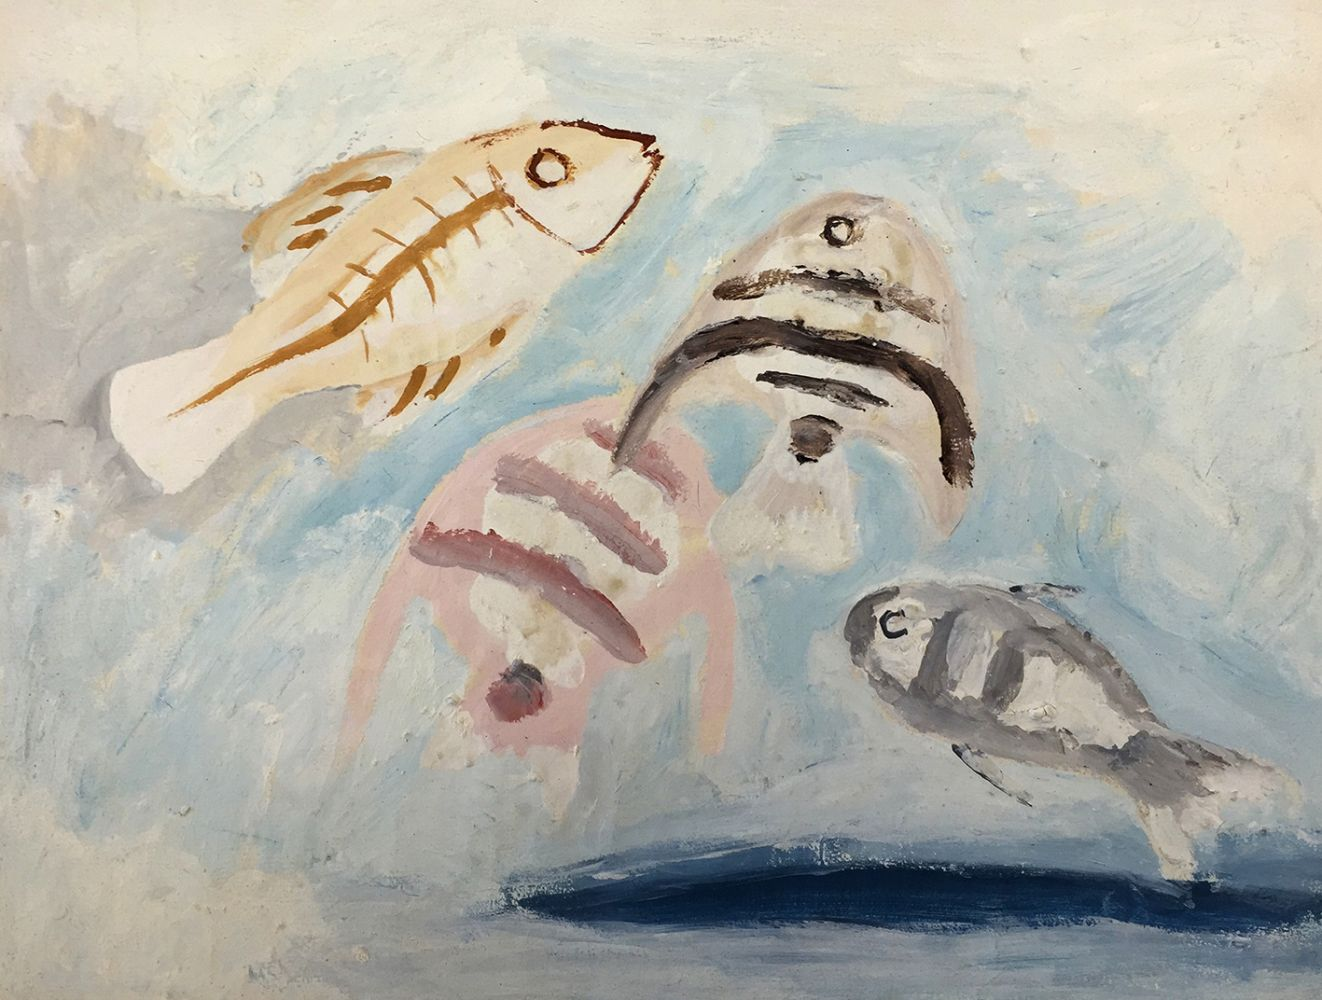 Curt Lahs | Four Fish on Bright Ground | 1935 | tempera over pencil on laid paper | authorized and dated by estate | 23.5 x 31